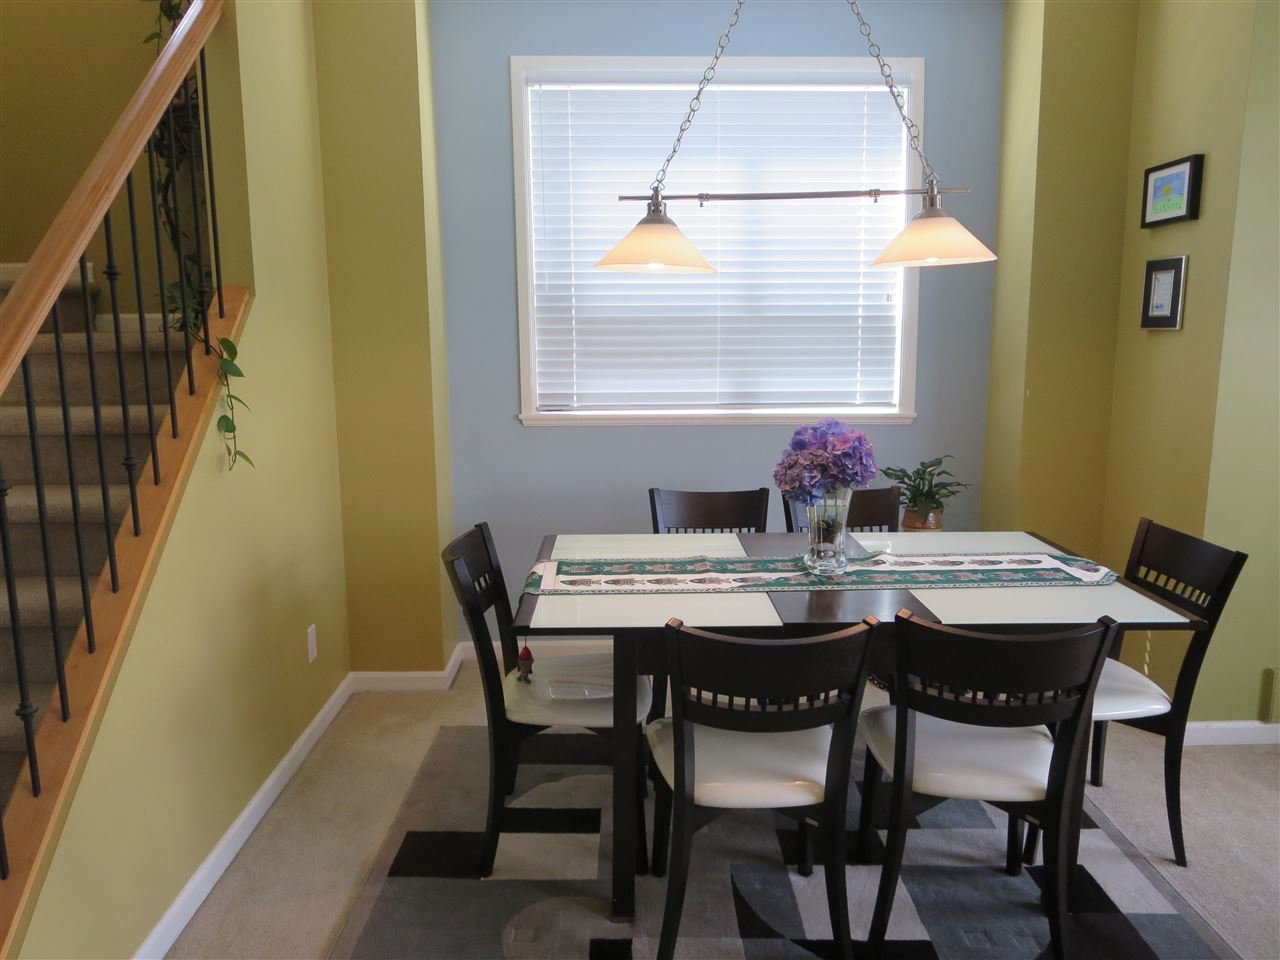 Photo 4: Photos: 63 3127 SKEENA Street in Port Coquitlam: Riverwood Townhouse for sale : MLS®# R2090693